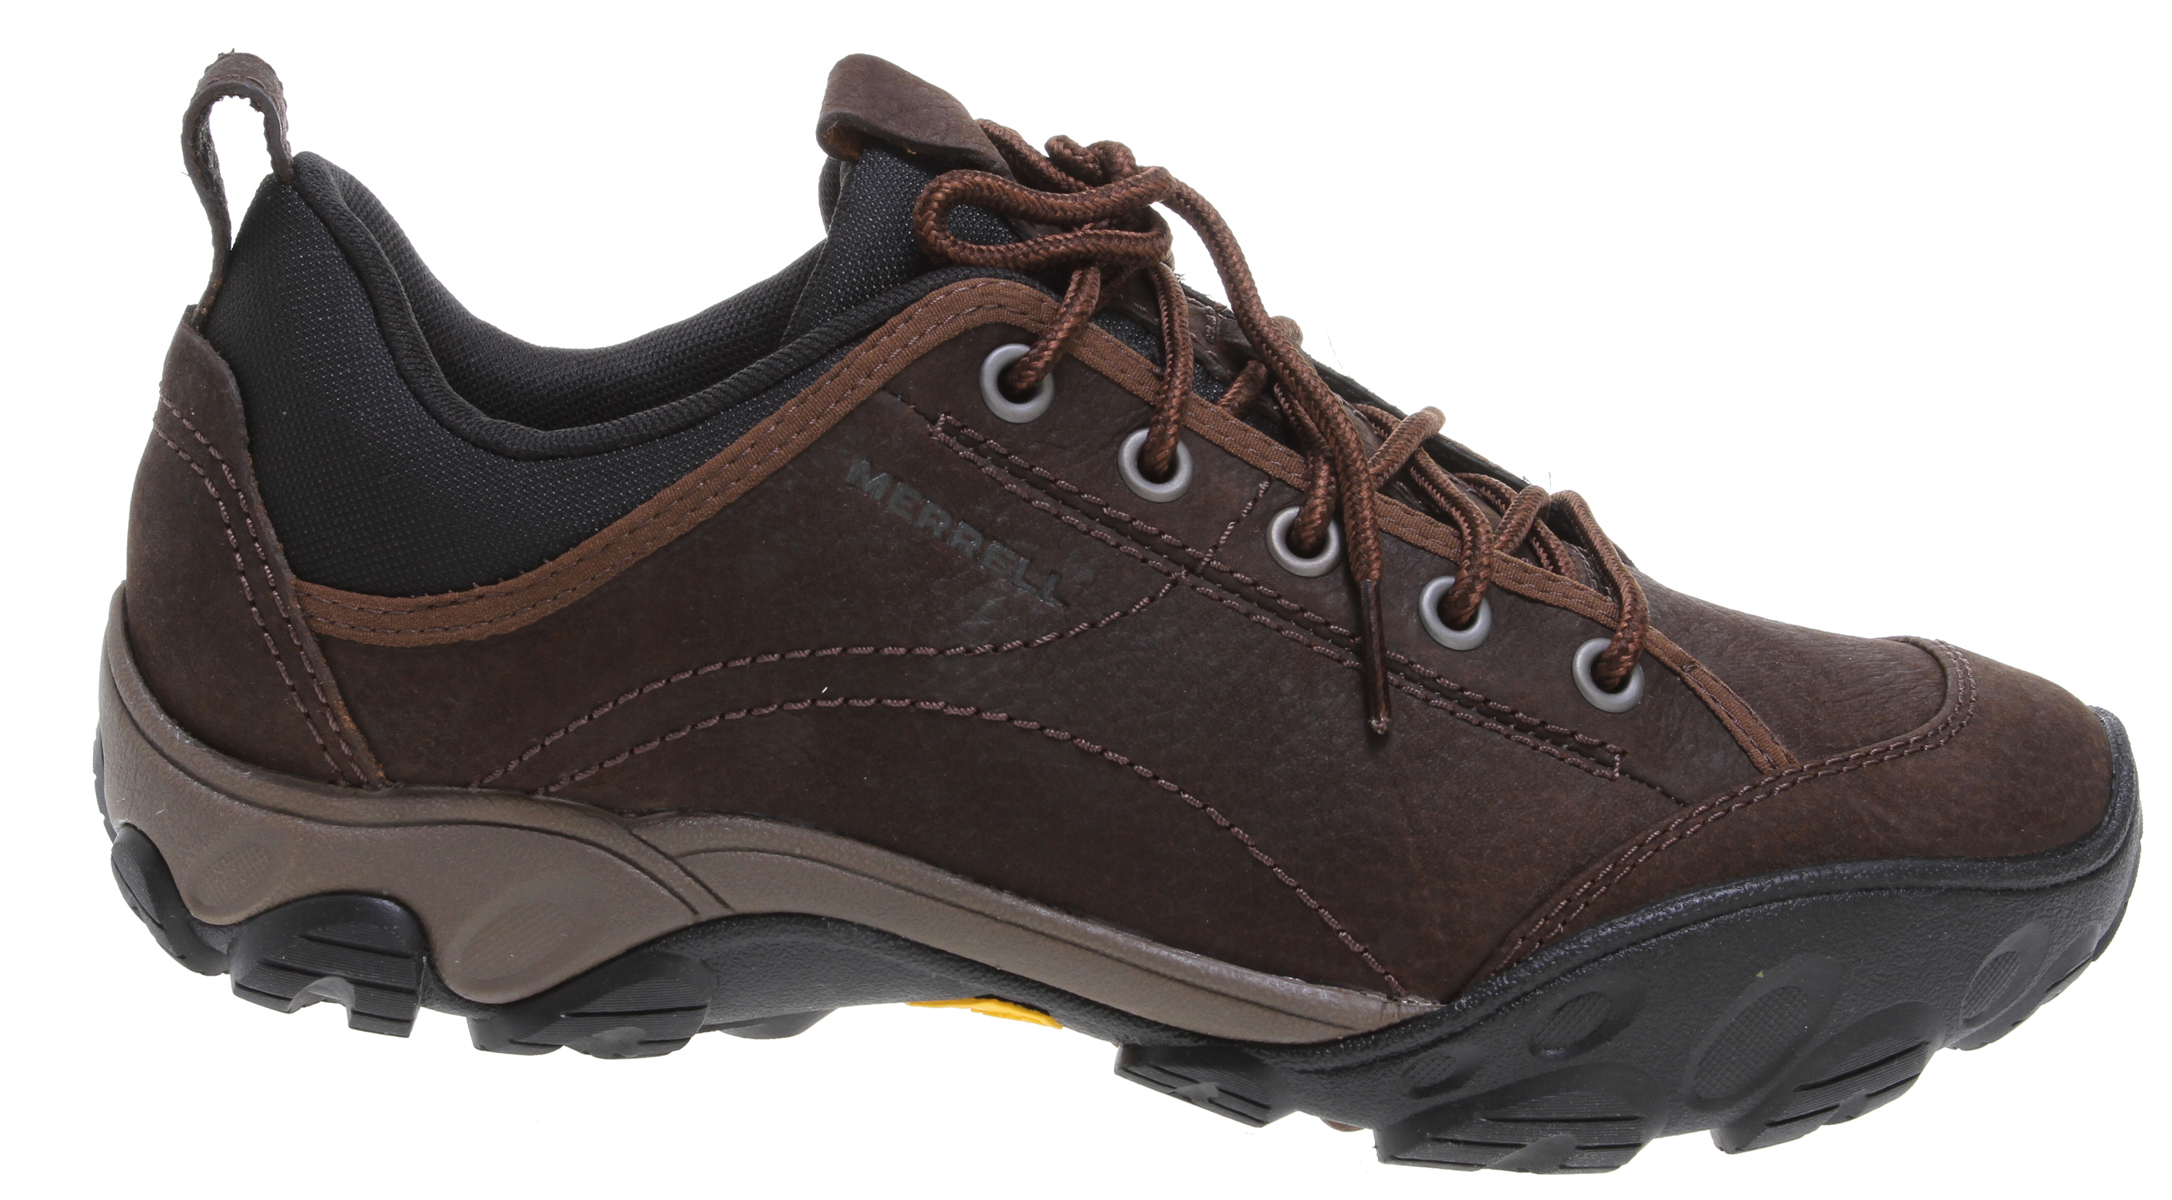 Camp and Hike So what if you work in an office? With these casual hiking shoes you're ready to answer the call to get outside at any moment. Equipped for all adventures great and small, these handsome hikers sport 5mm lugs in the sole, a padded gusset tongue, and a breathable lining that's been treated with Aegis antimicrobial.Key Features of the Merrell Sight Hiking Shoes: Strobel construction offers flexibility and comfort Full grain leather Breathable mesh lining treated with Aegis® antimicrobial solution Ortholite® Anatomical Footbed Molded nylon arch shank Merrell® Air Cushion in the heel absorbs shock and adds stability with an EVA Midsole for cushioning 5mm Sole Lug depth Vibram® pelorus/TC5+ rubber Weight: 2 lbs. 3 ozs. - $76.95